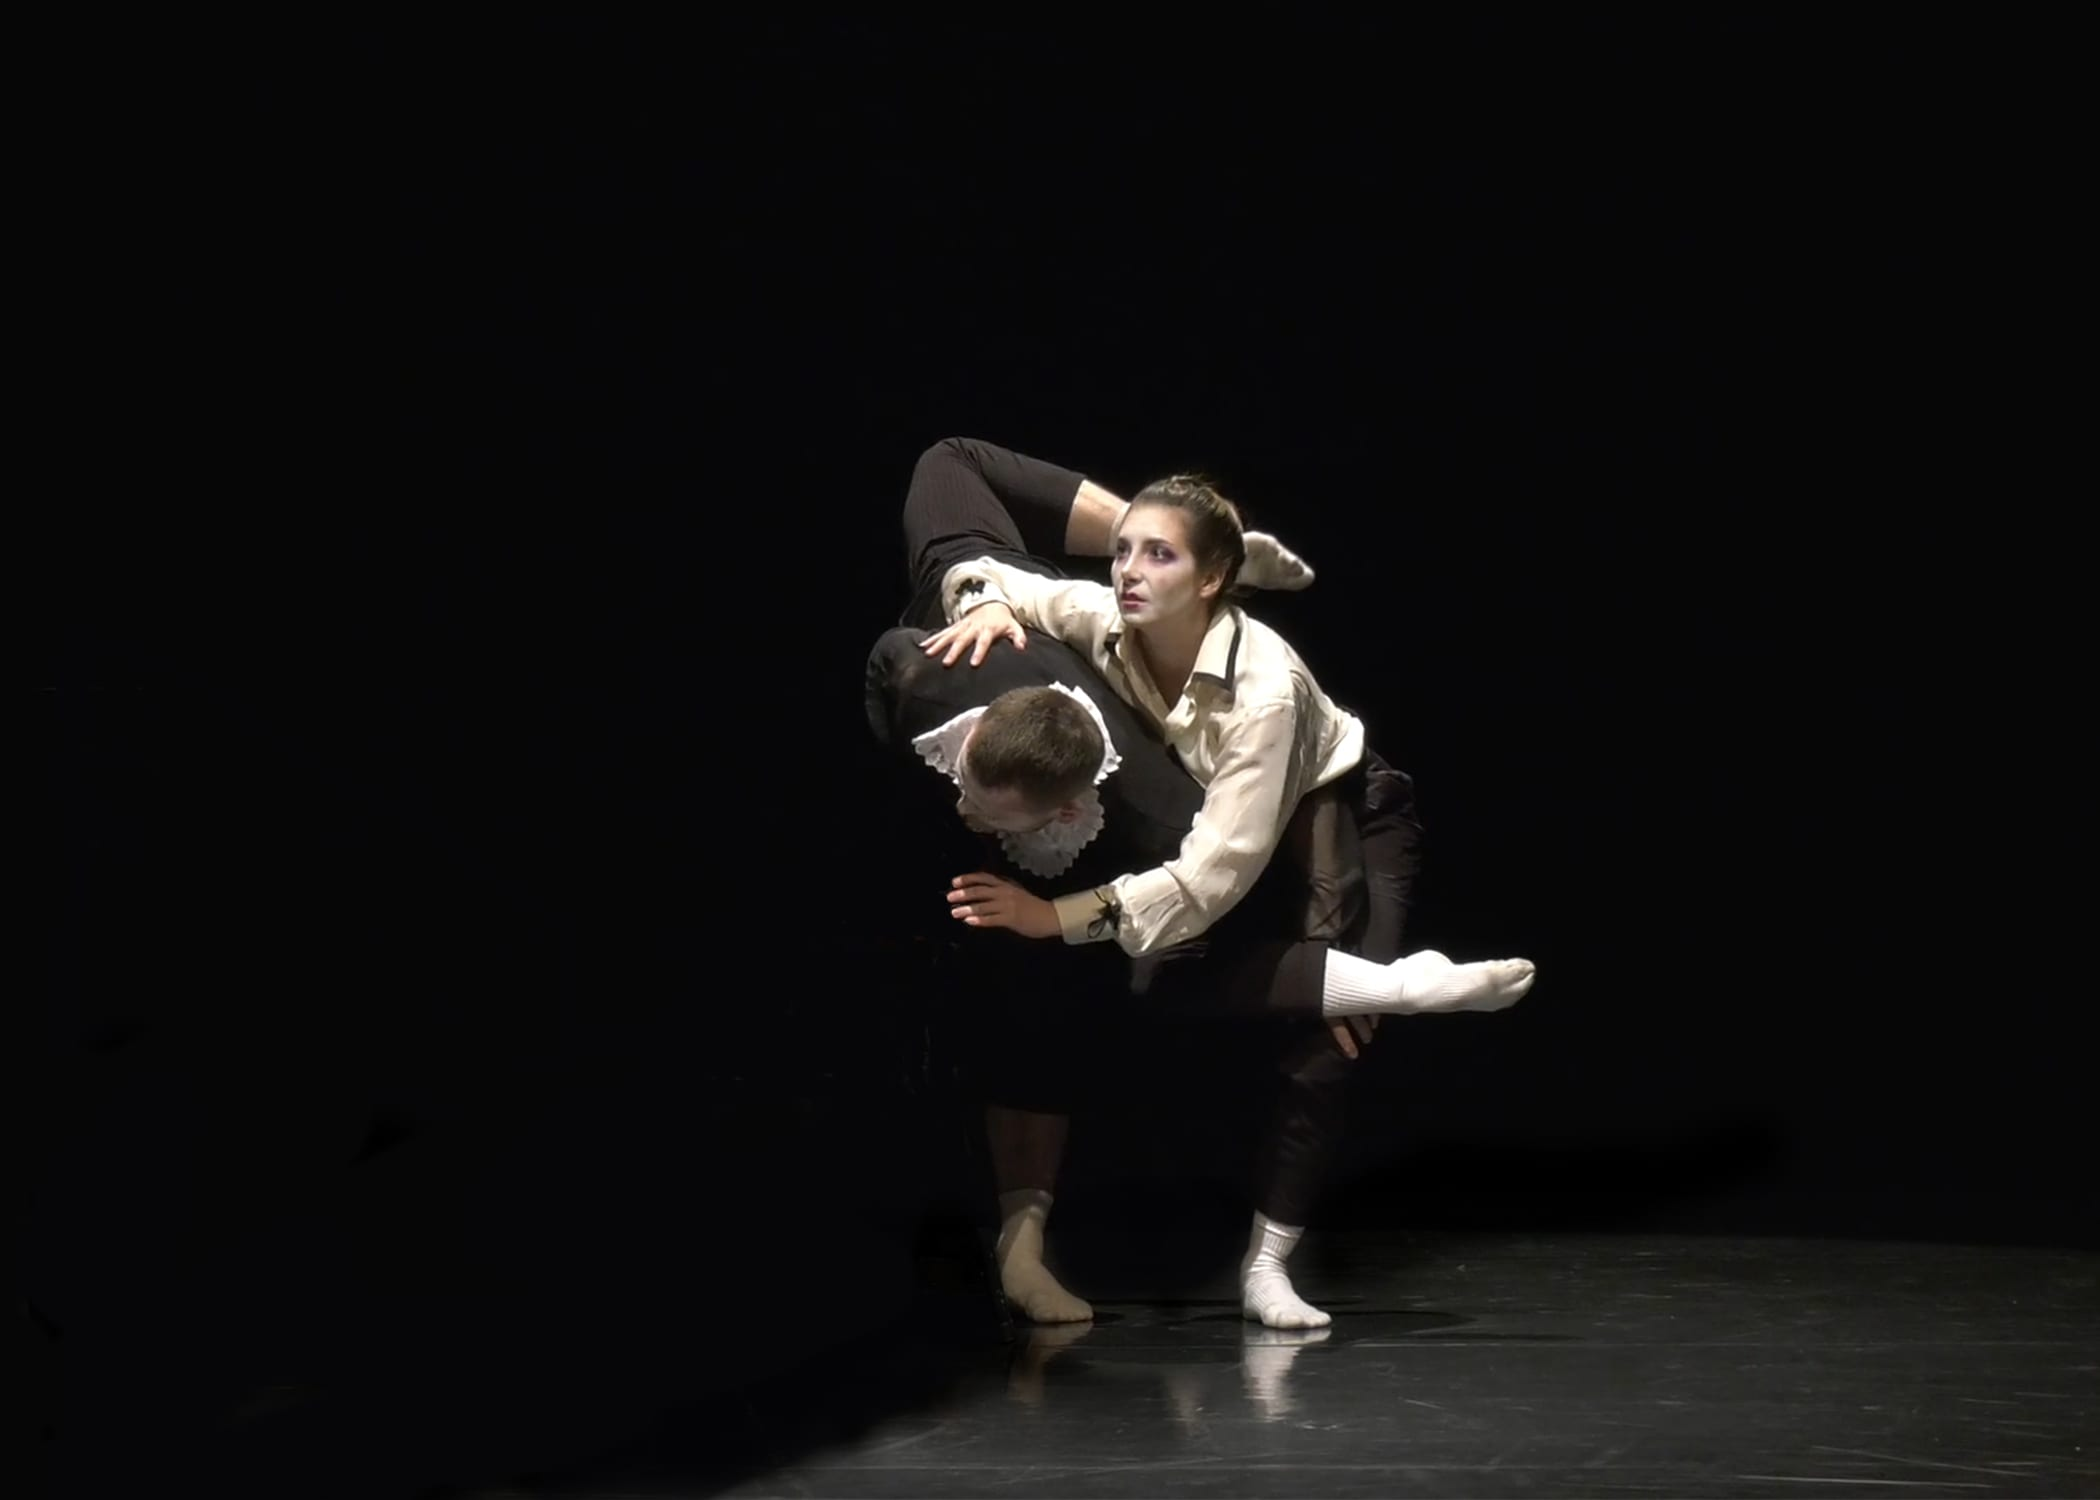 Dance artists Racheal Prince & Brandon Lee Alley perform Hourglass on a stage